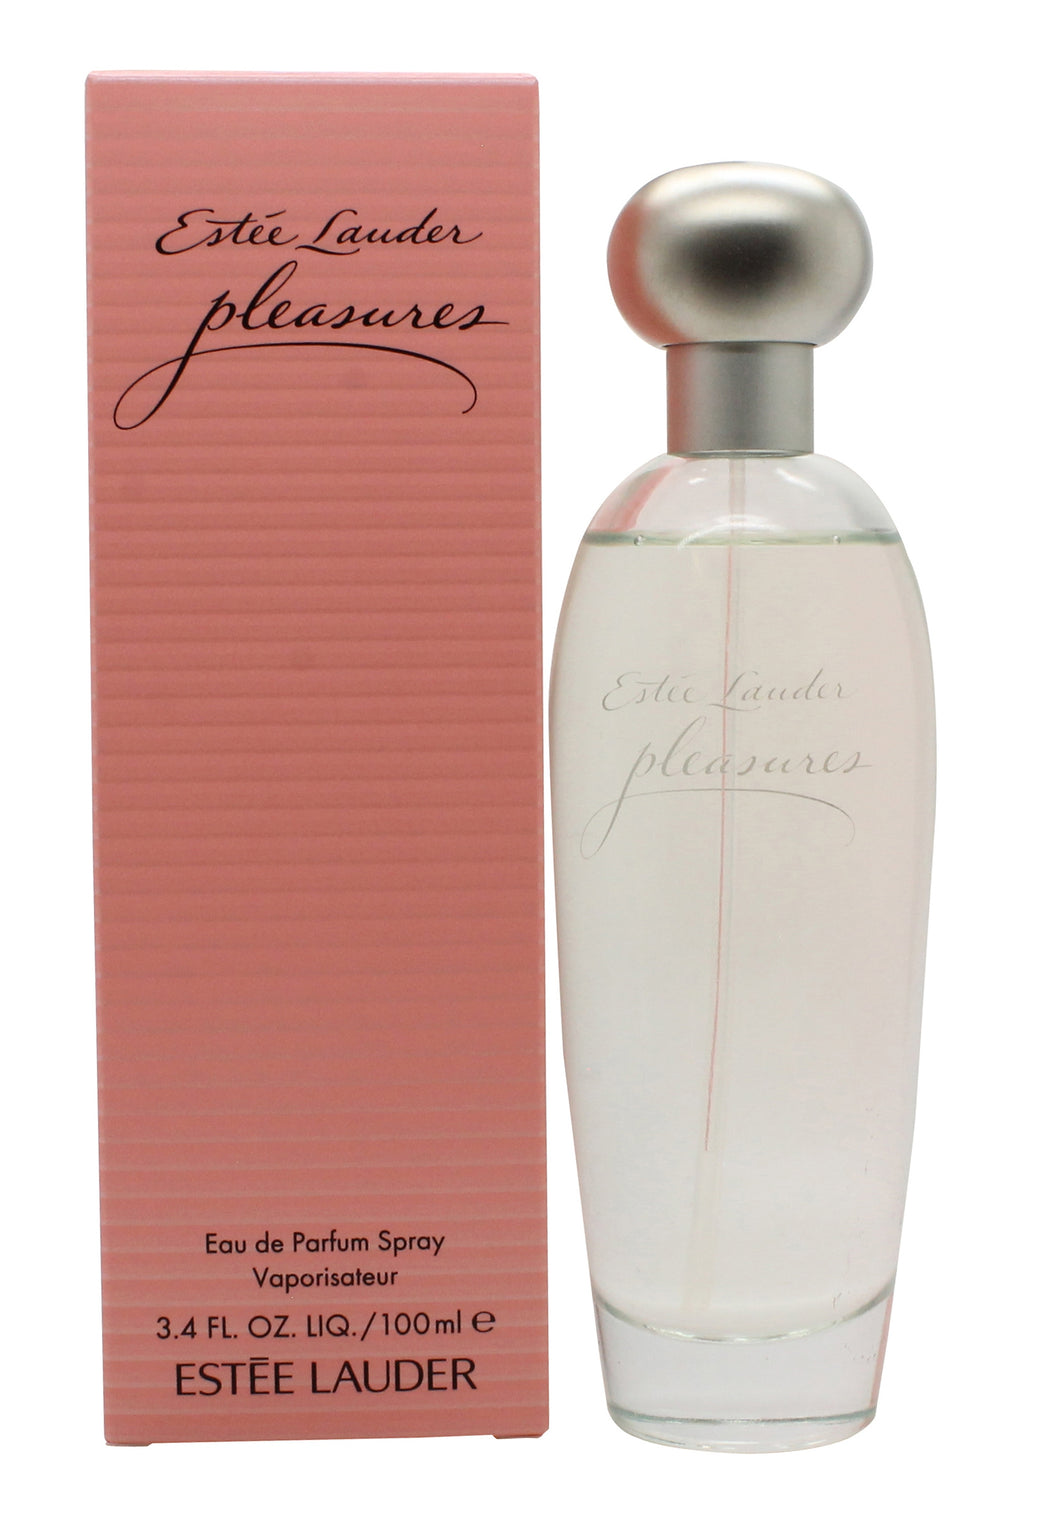 Estee Lauder Pleasures Eau de Parfum 100ml Spray